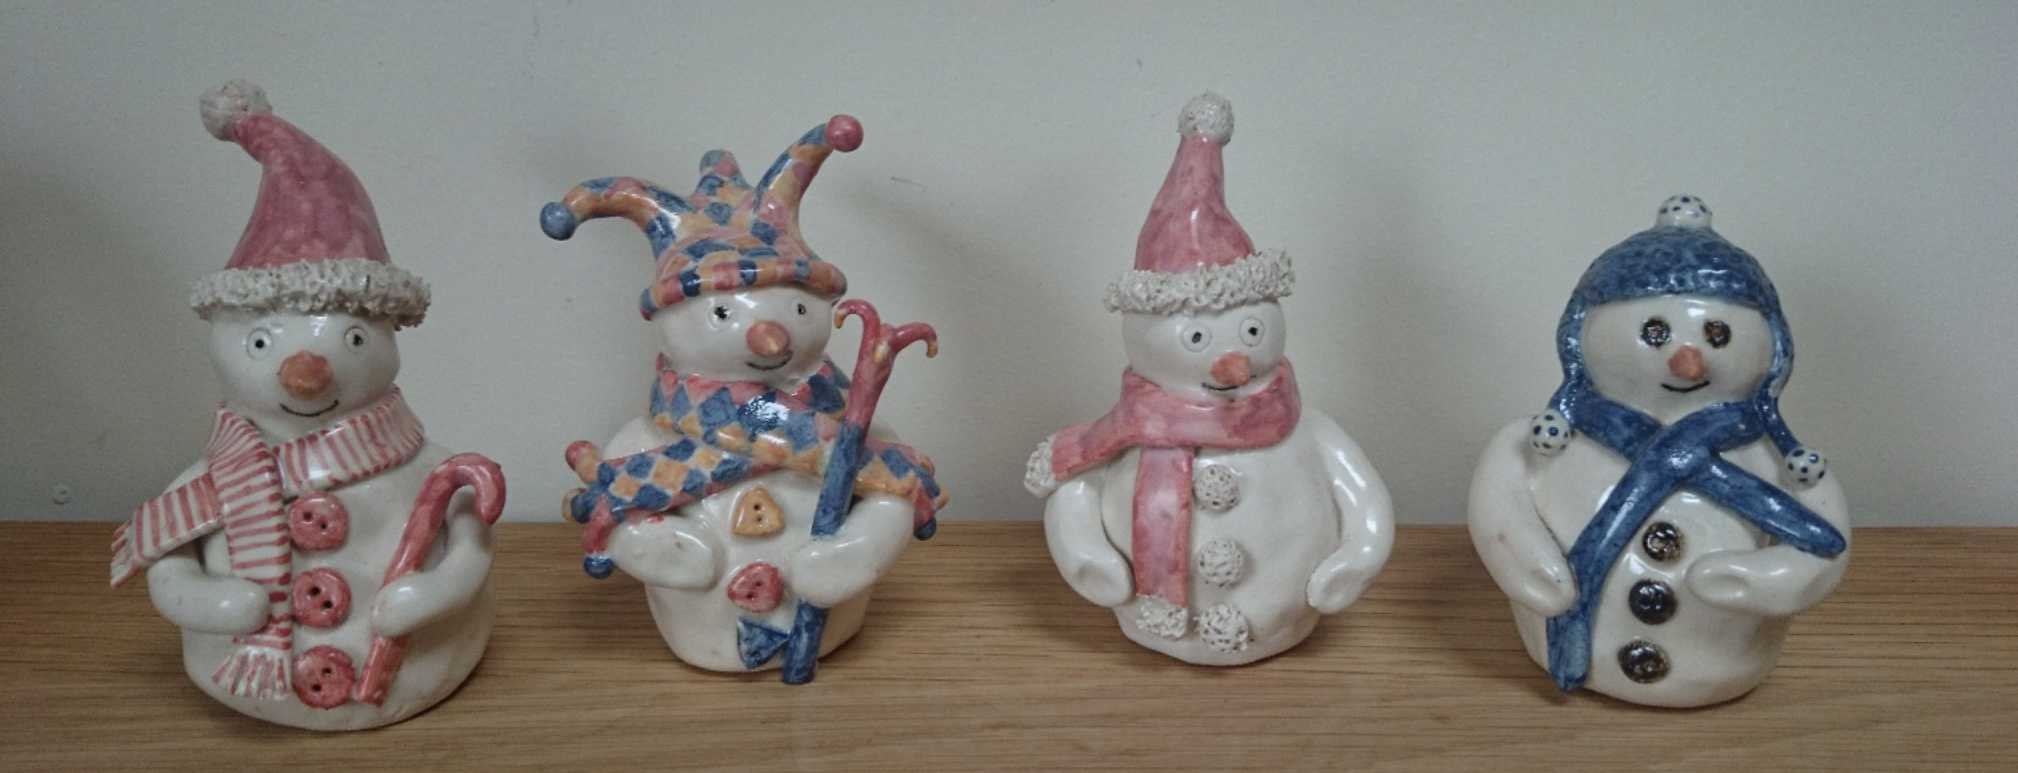 Pottery snowpeople